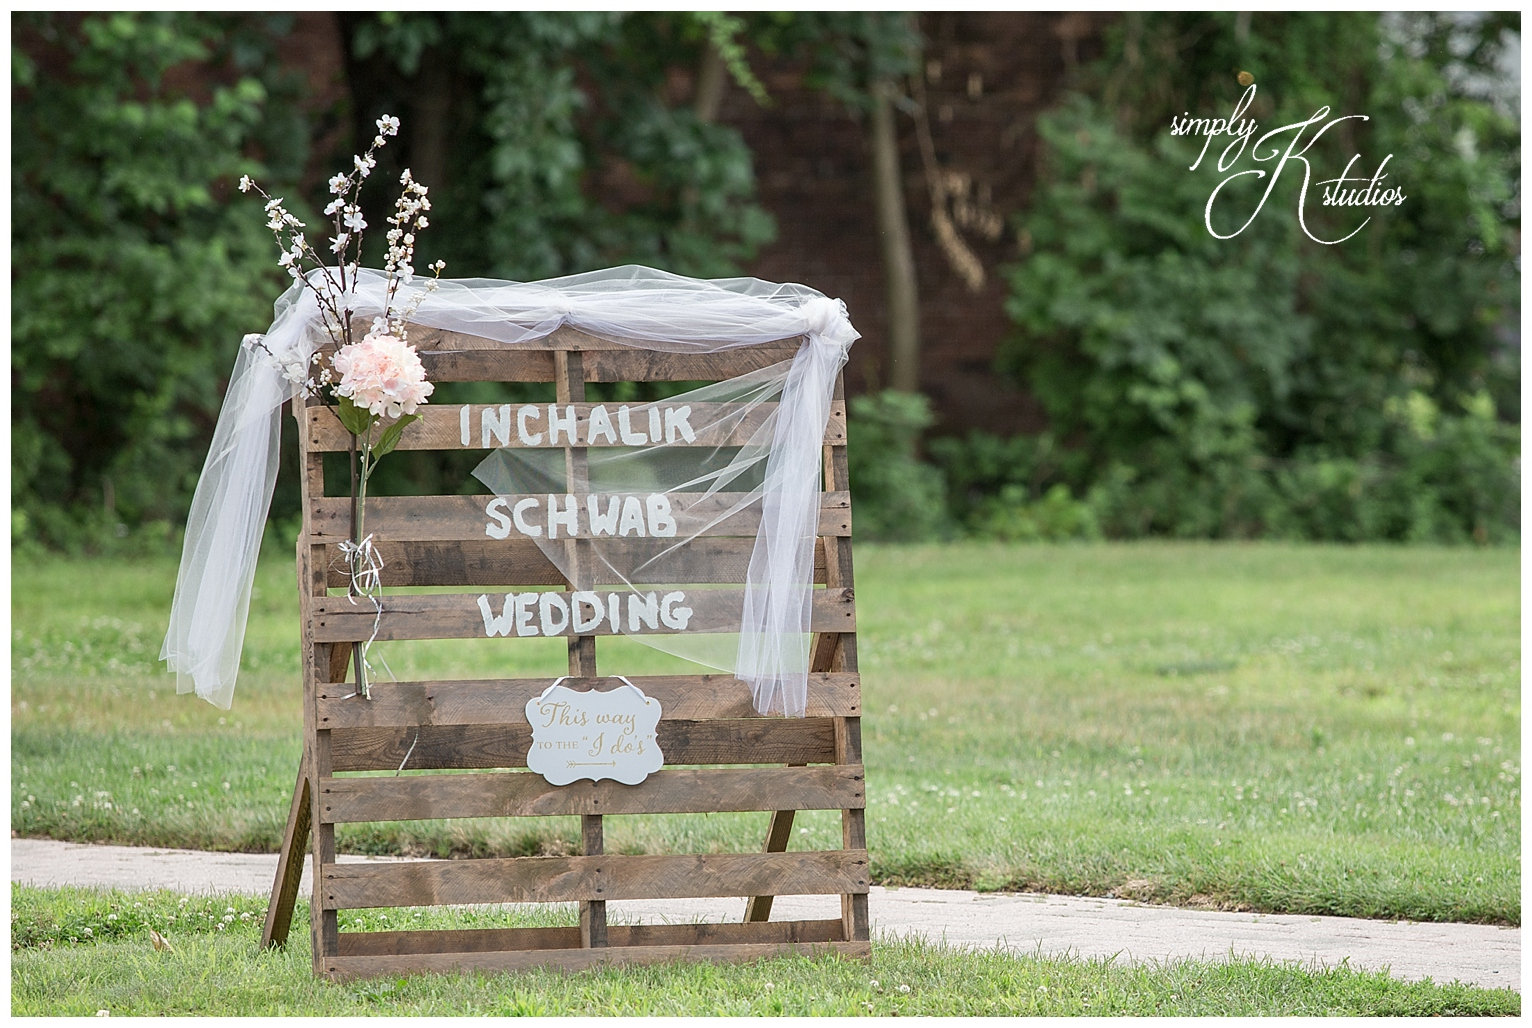 DIY Wedding Ideas for Signs.jpg